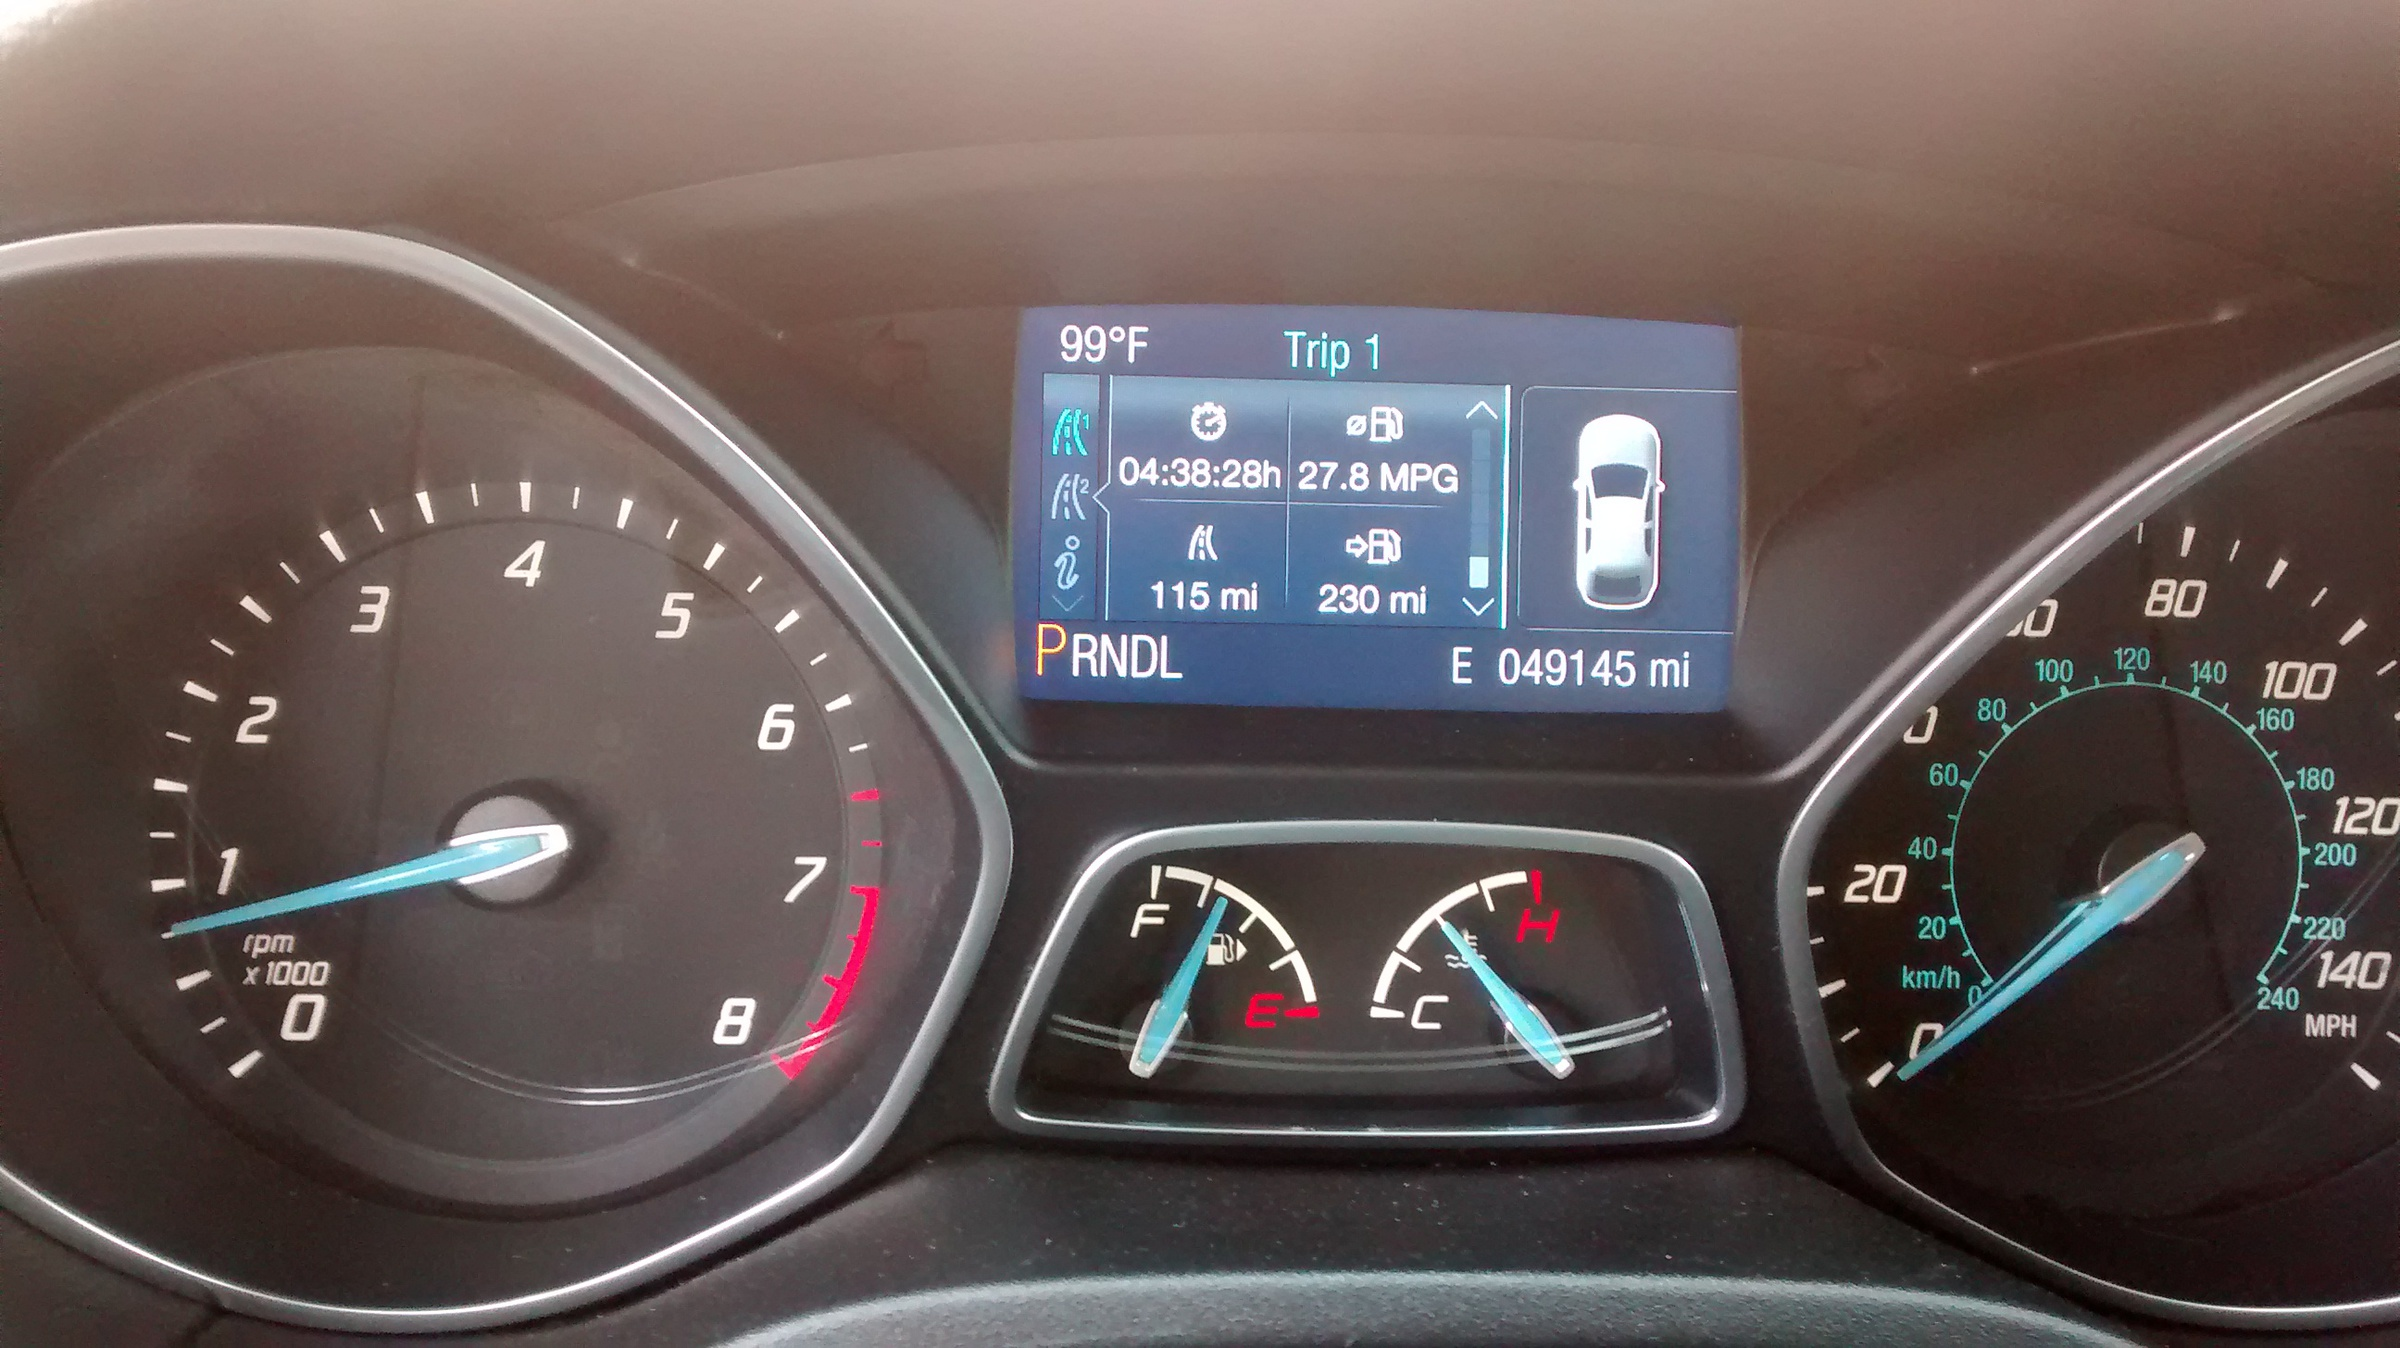 An Issue Ford can't figure out on my Focus-img_20150620_170442626%5B1%5D.jpg